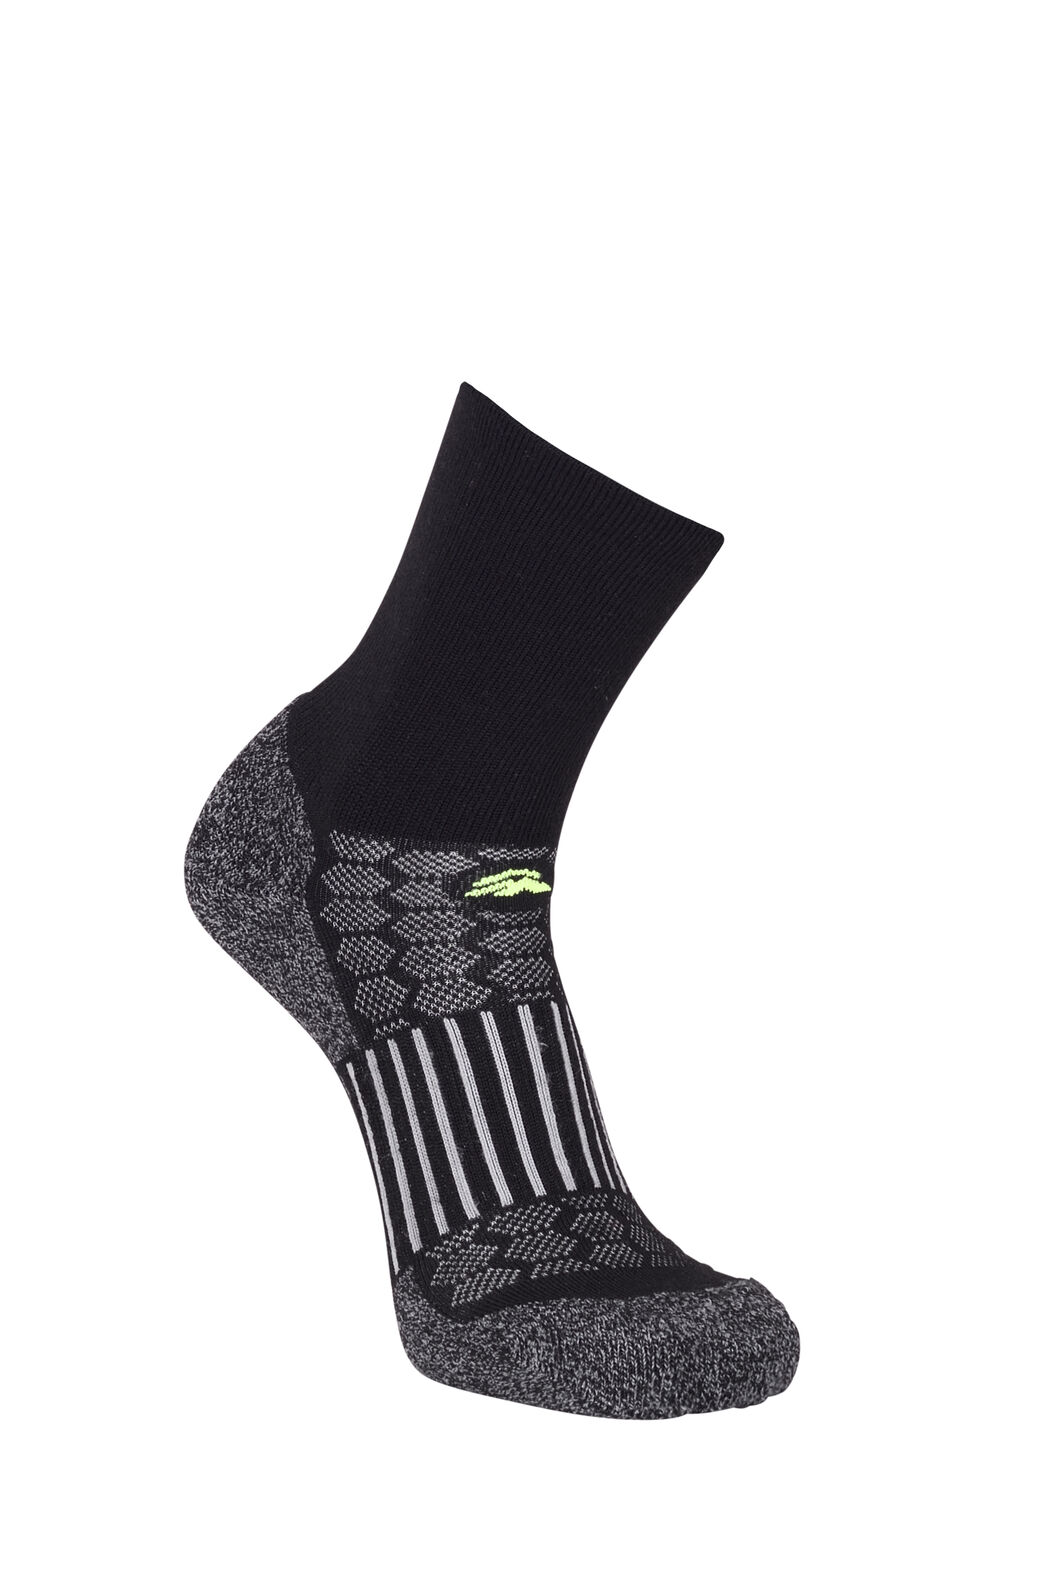 Macpac Tech Merino Hiker Socks, Black, hi-res